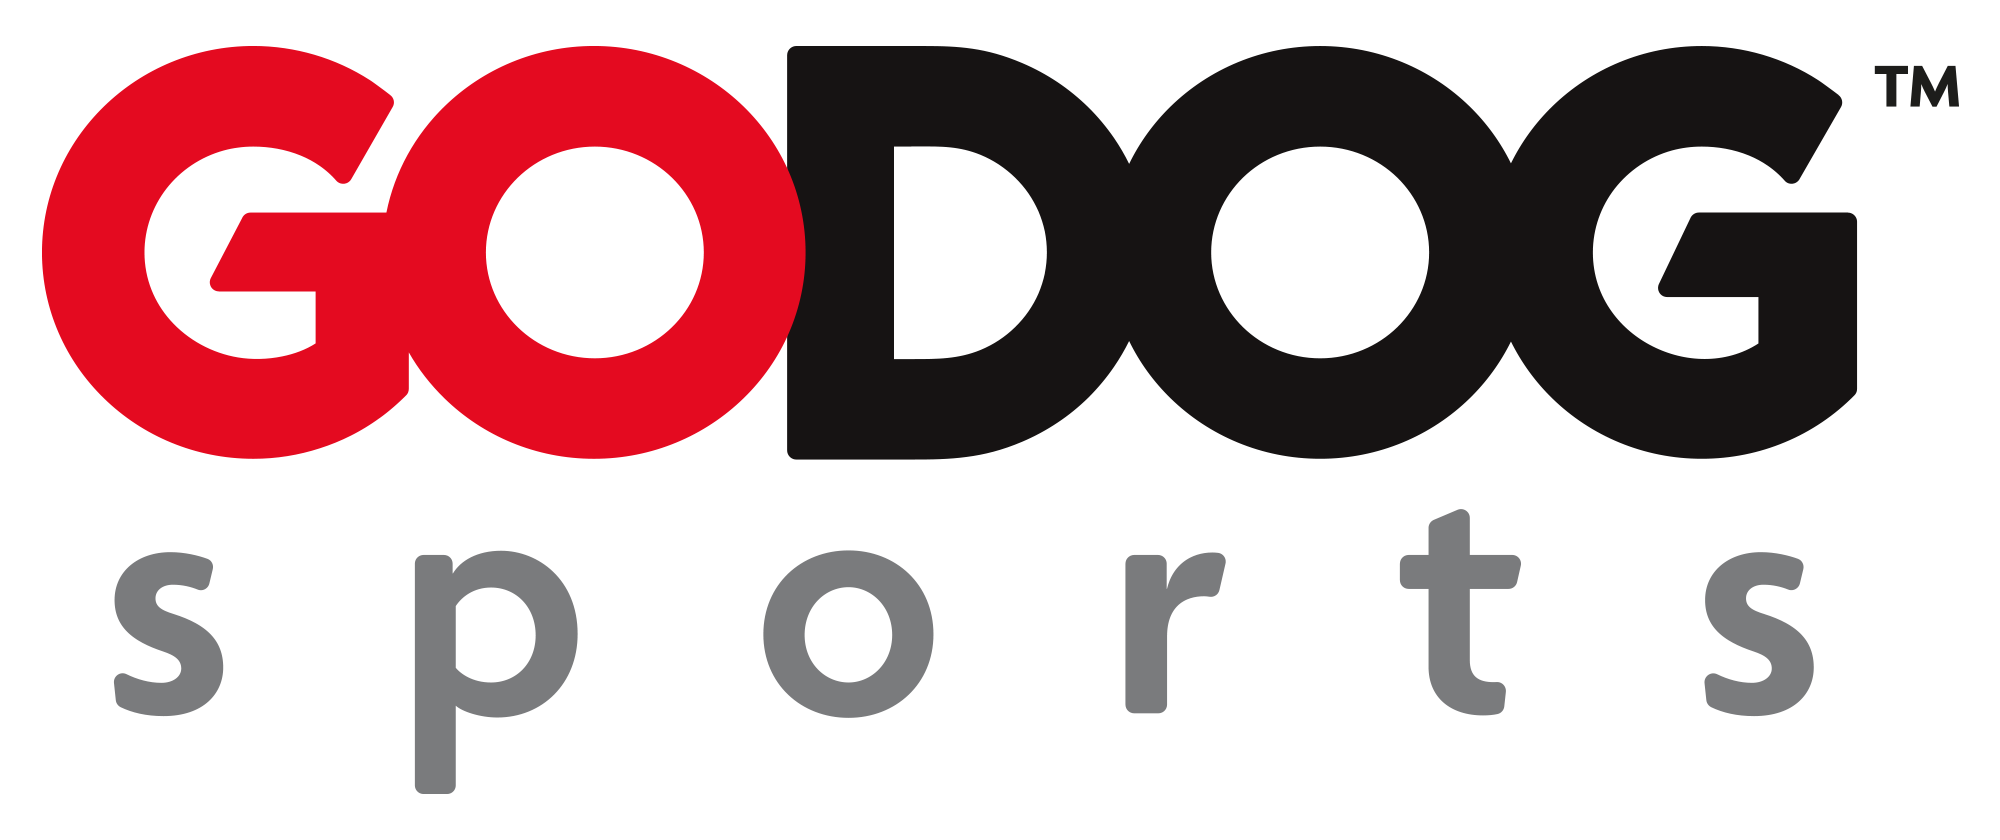 GoDog Sports, Inc. Help Center home page